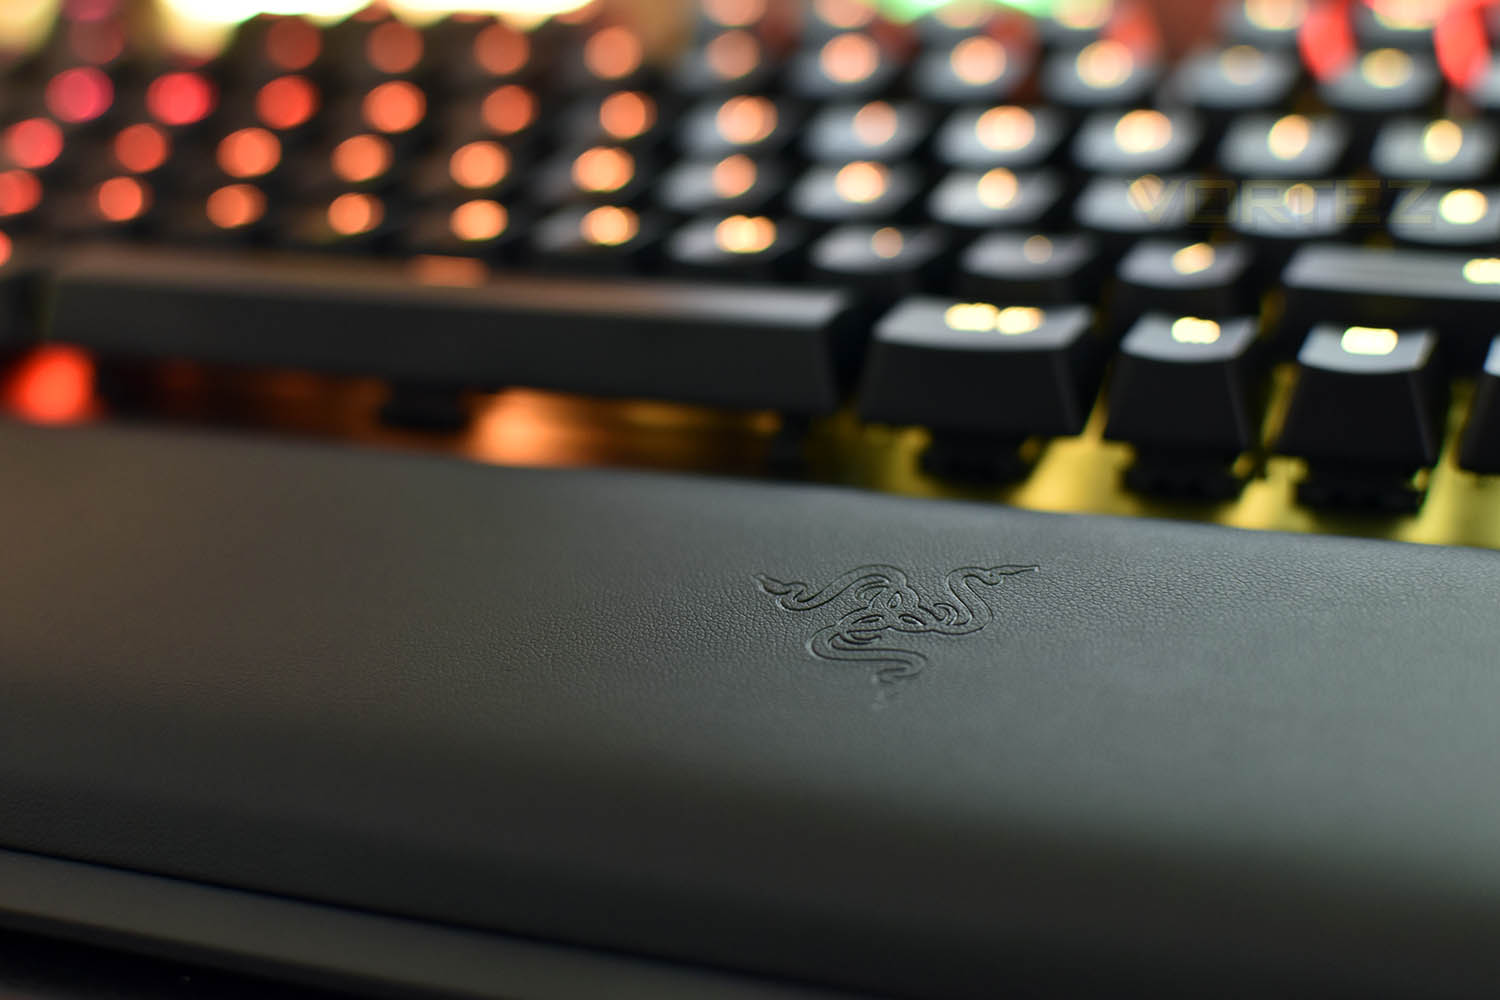 Razer BlackWidow Elite Review - Introduction